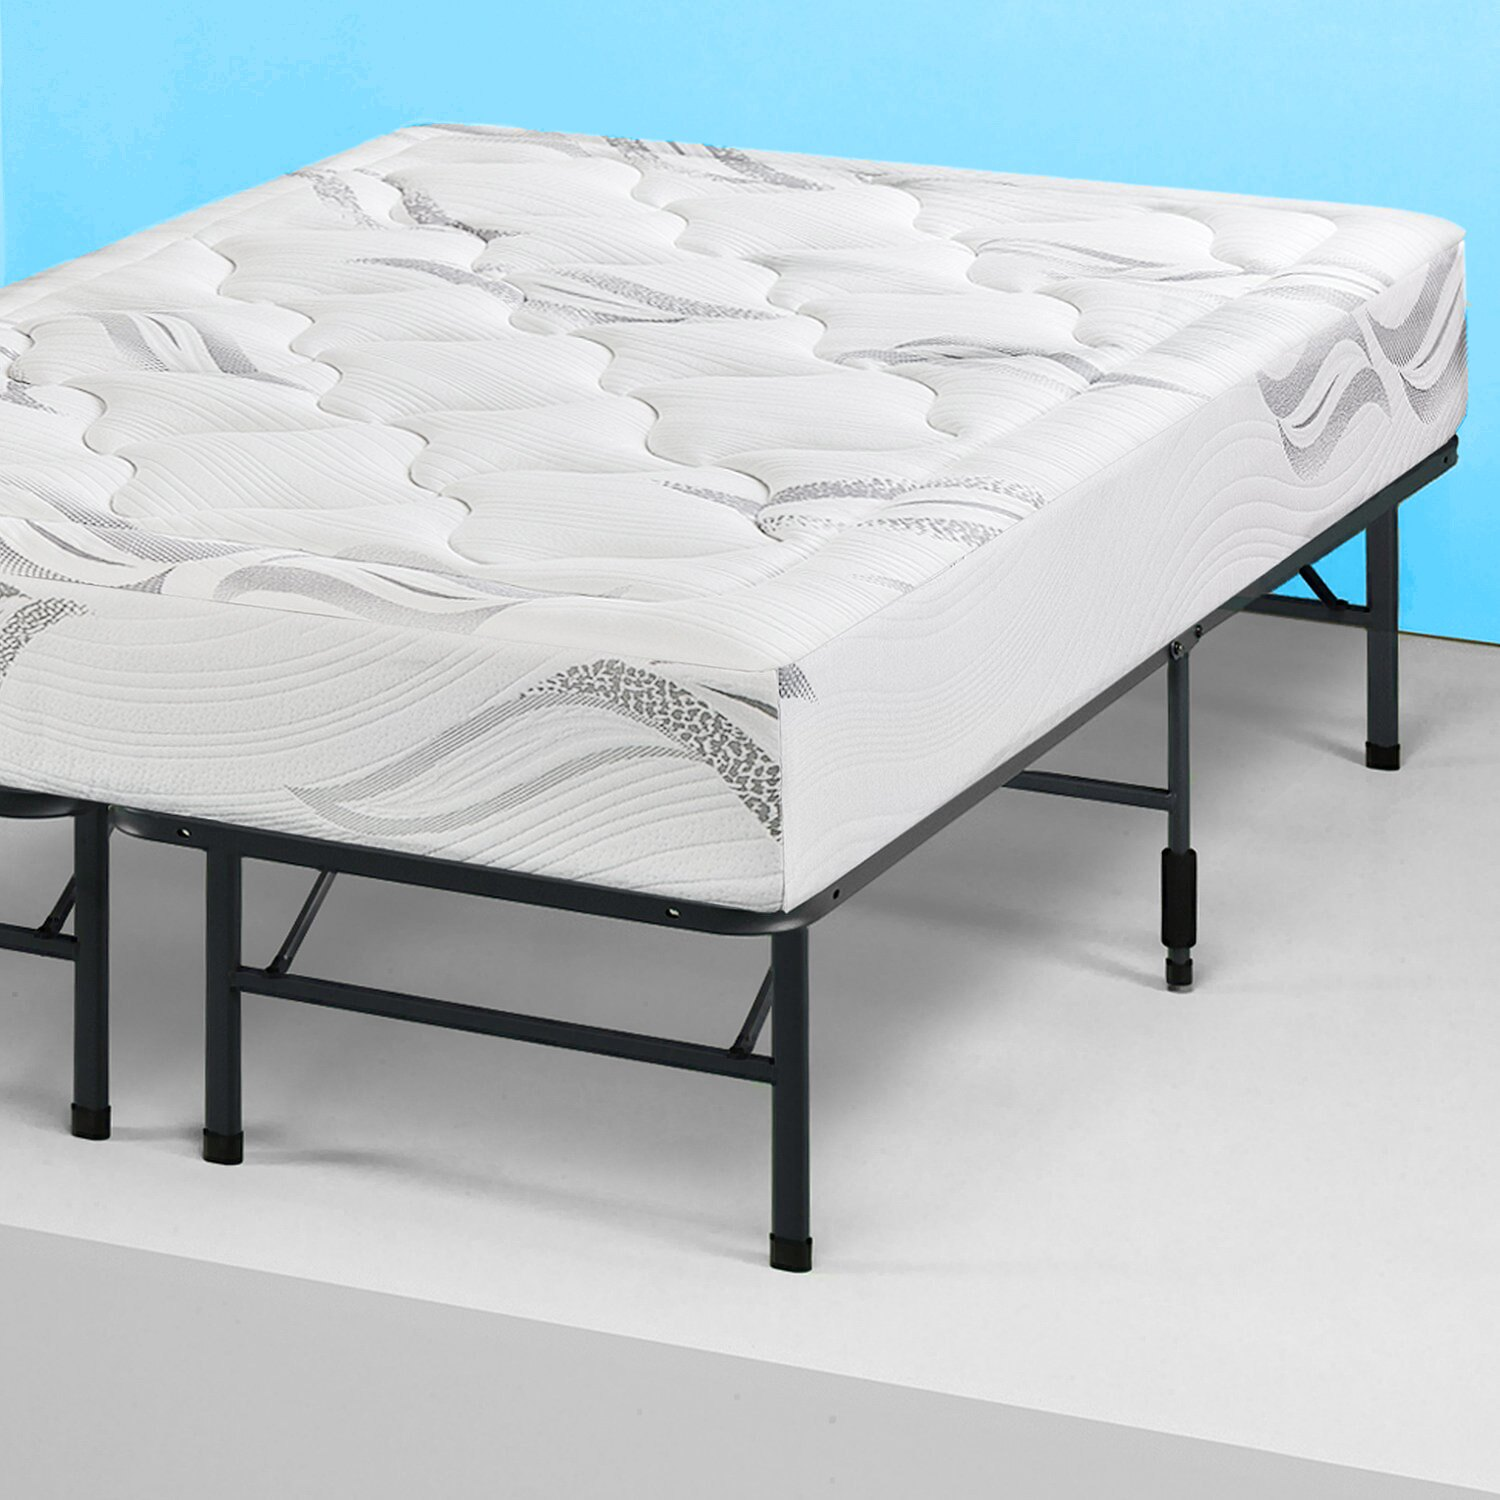 A Quality Night's Sleep With A Mattress Topper